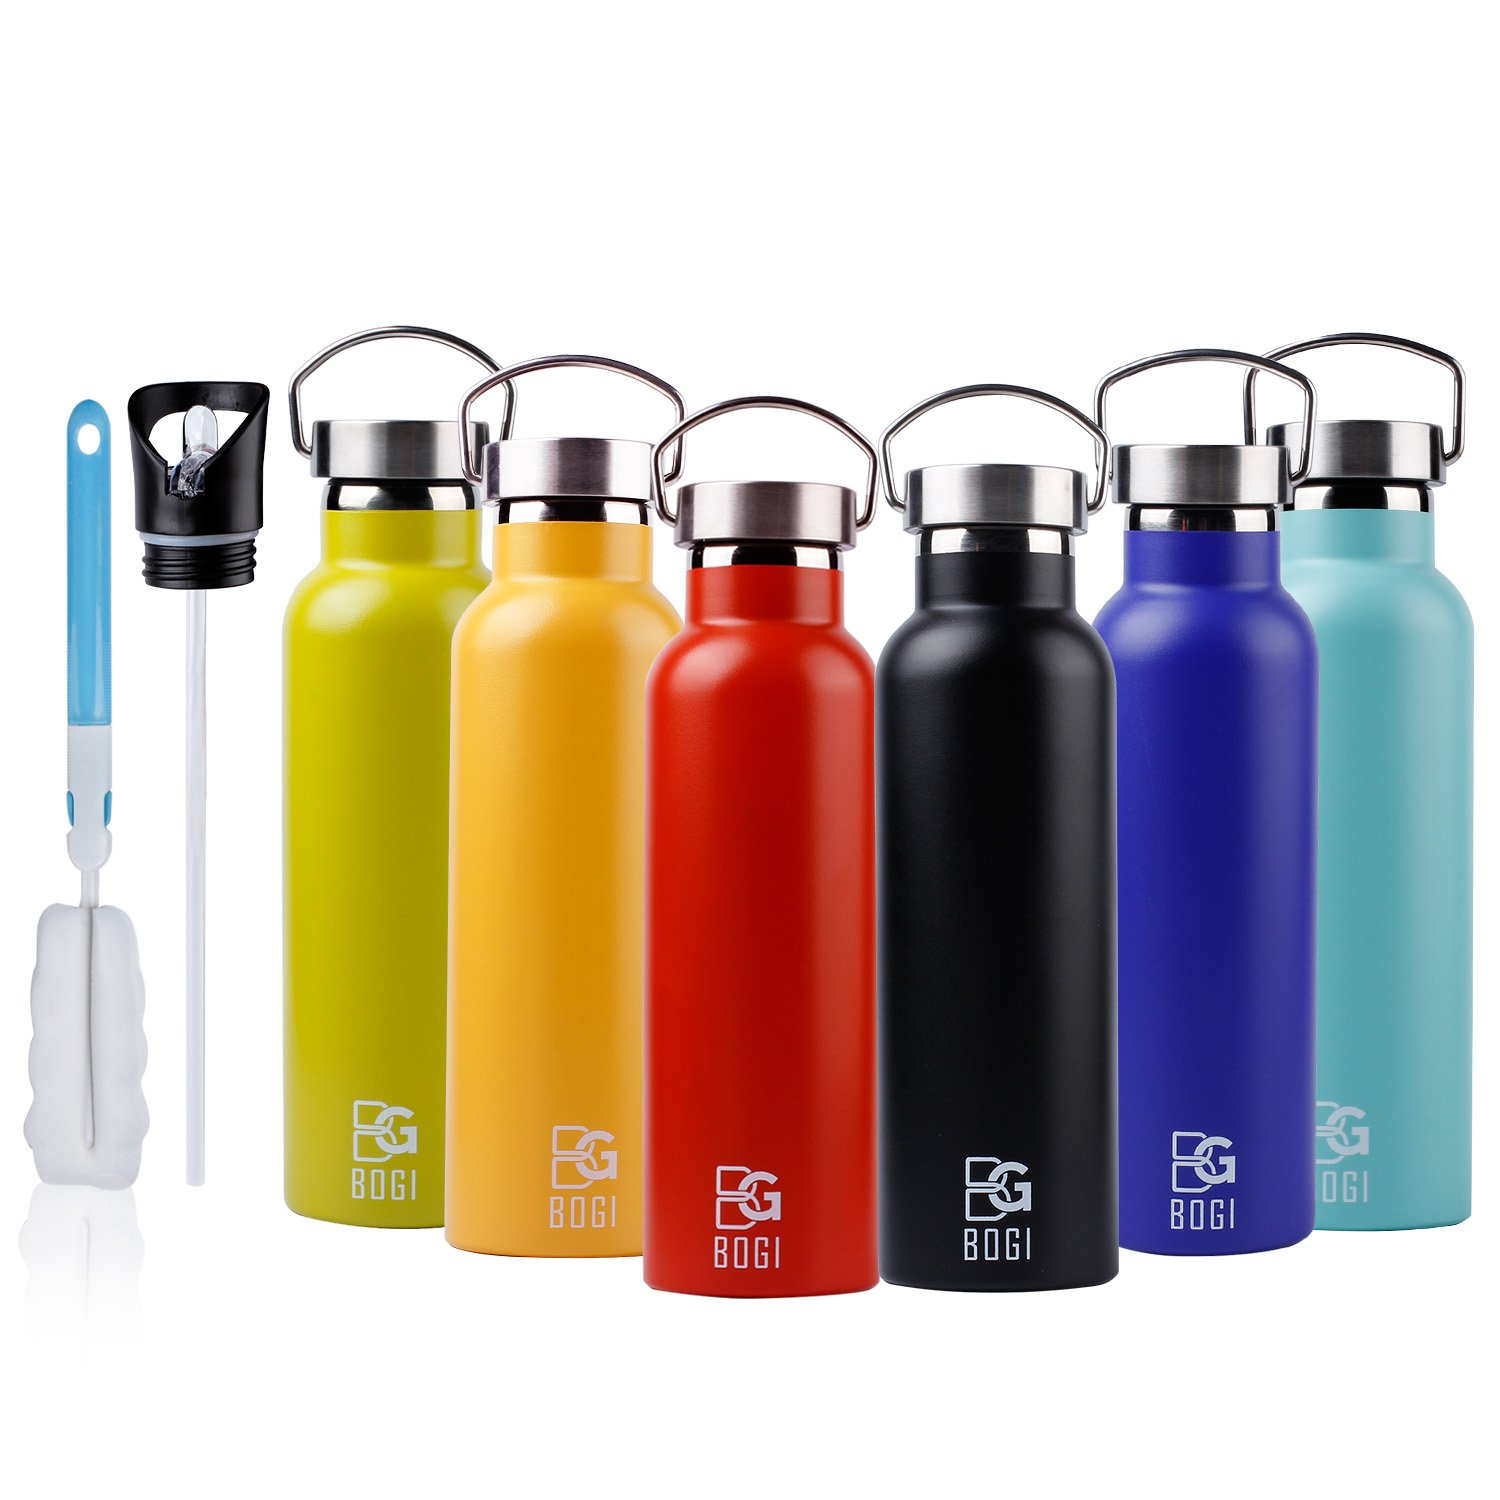 BOGI 20oz Double Wall Vacuum Insulated Stainless Steel Water Bottle-Scratch Resistance&Eco-Friendly for Outdoor Sports Yoga Camping+Straw Flip Cap,2 Straw&Cleaning Brush-1Year Warranty